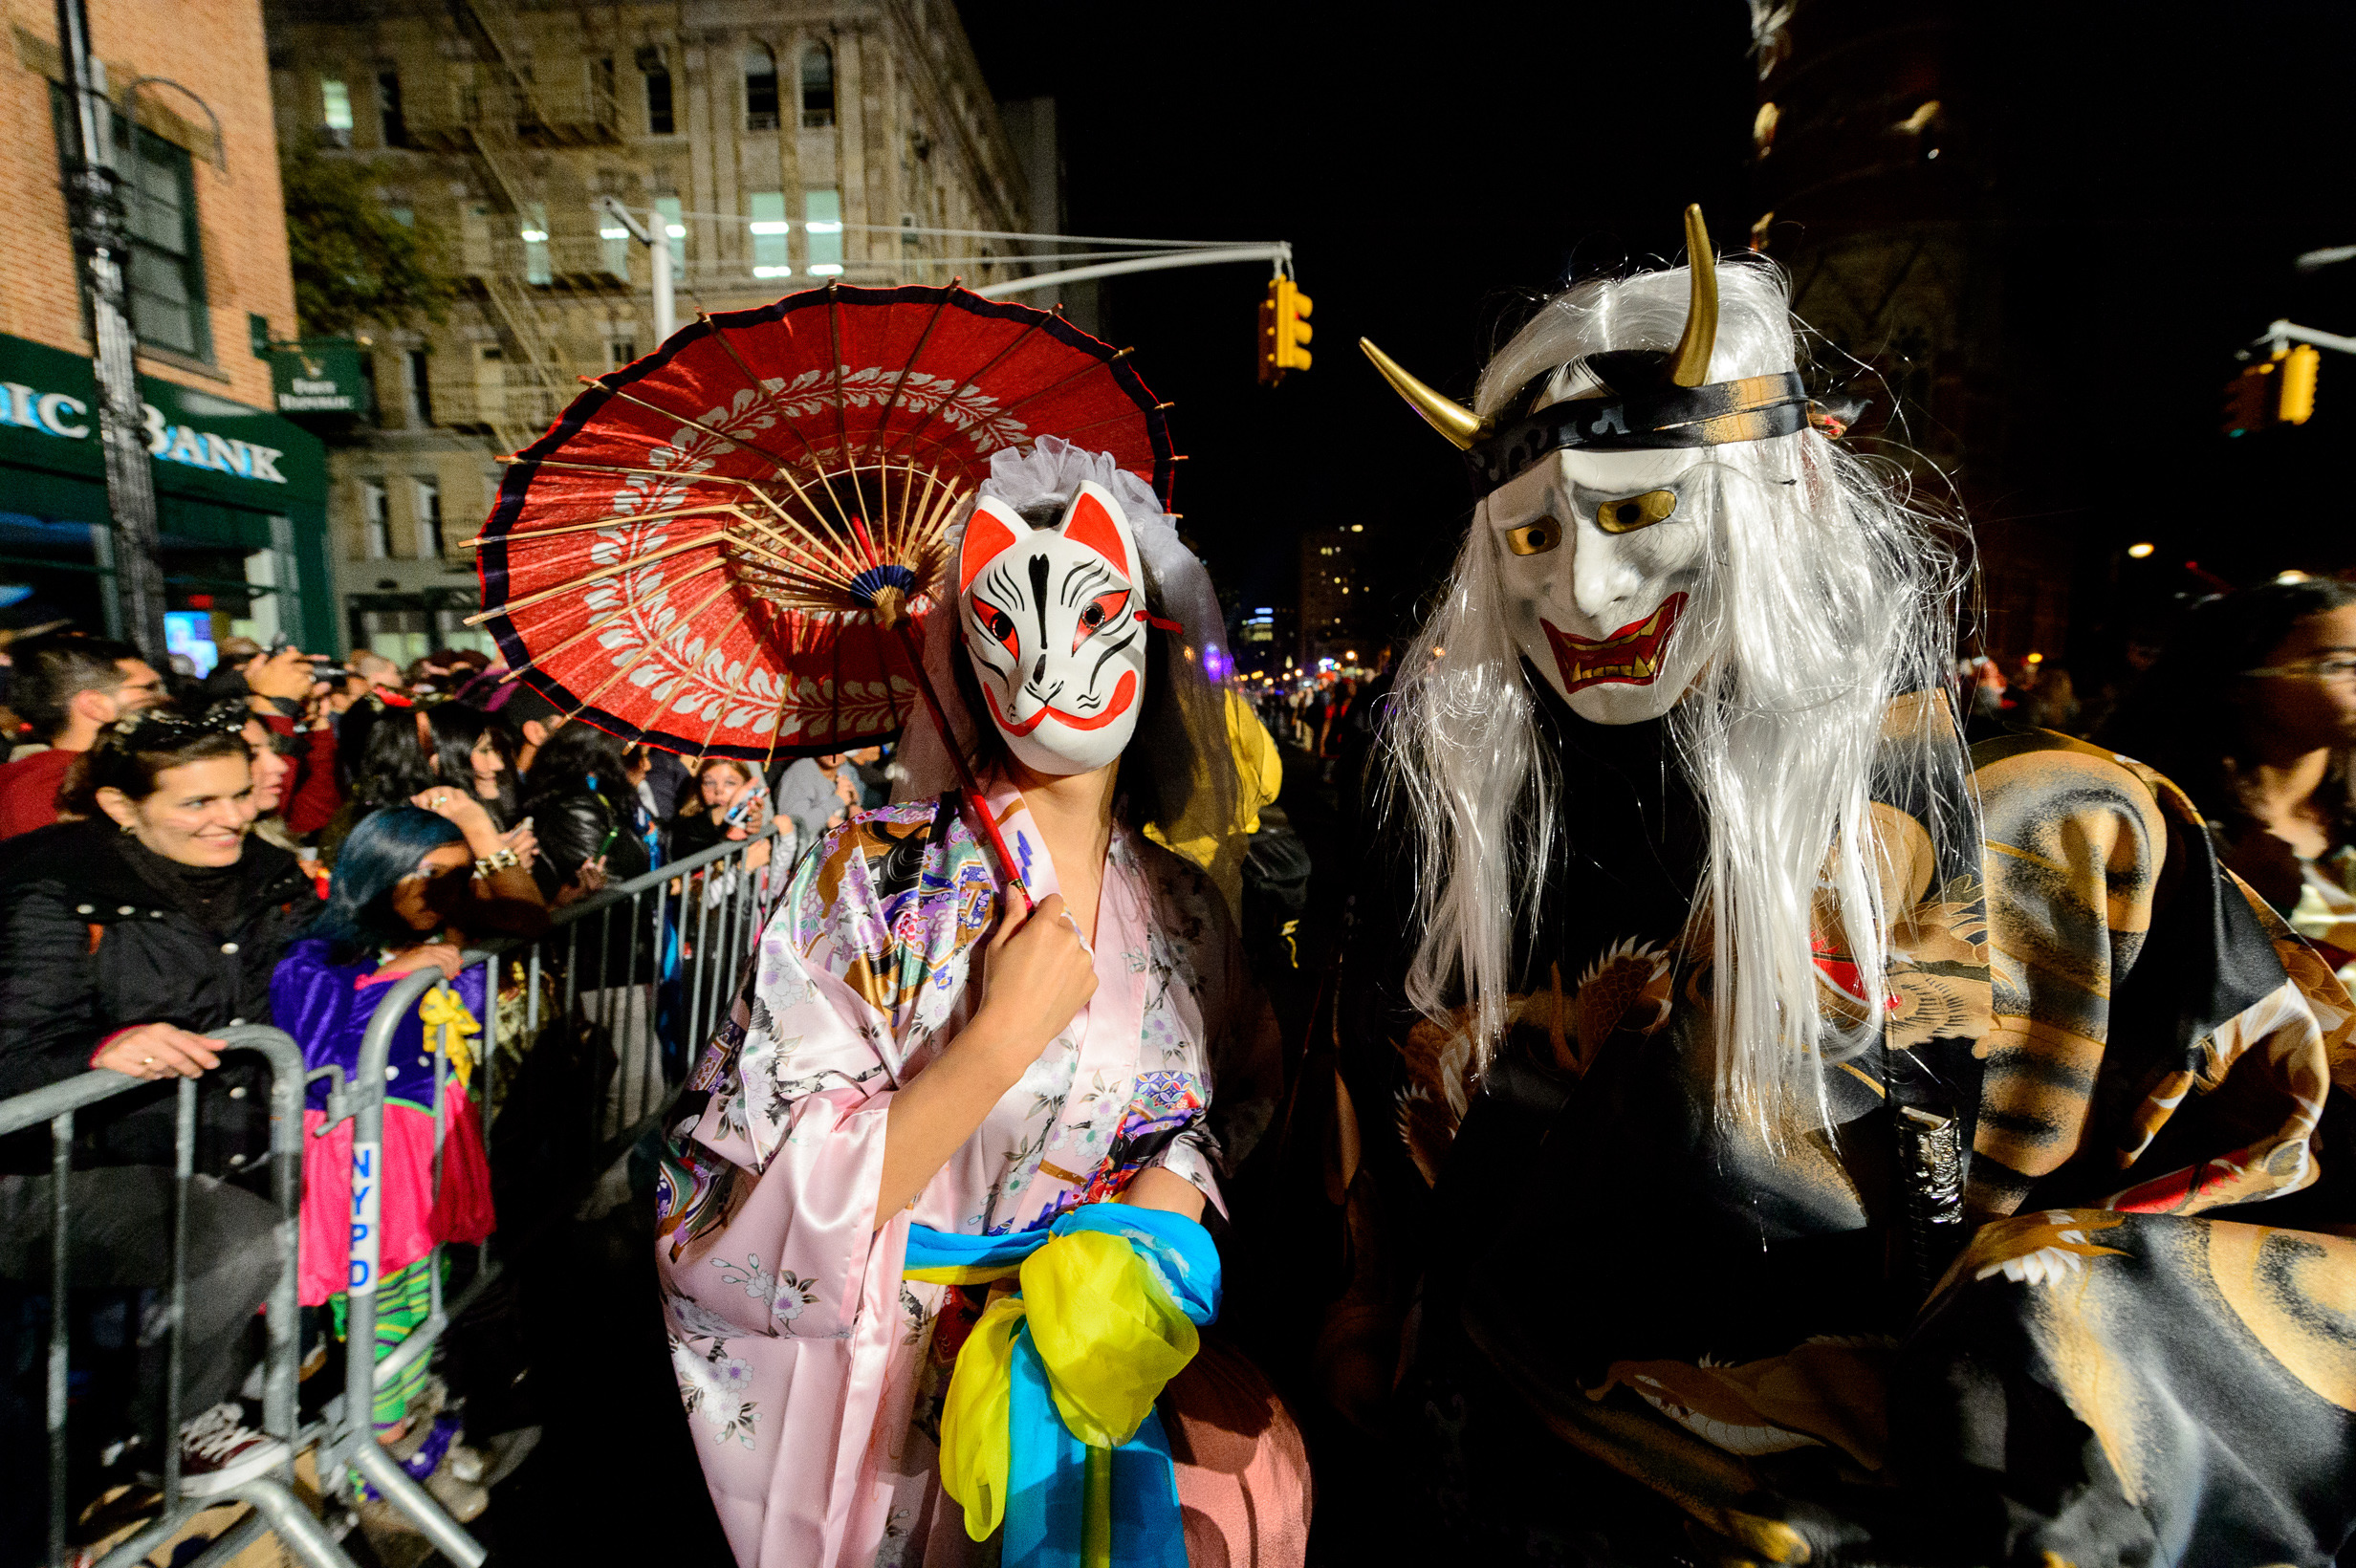 Village halloween parade in nyc 2017 guide plus when it starts for Activities for couples in nyc